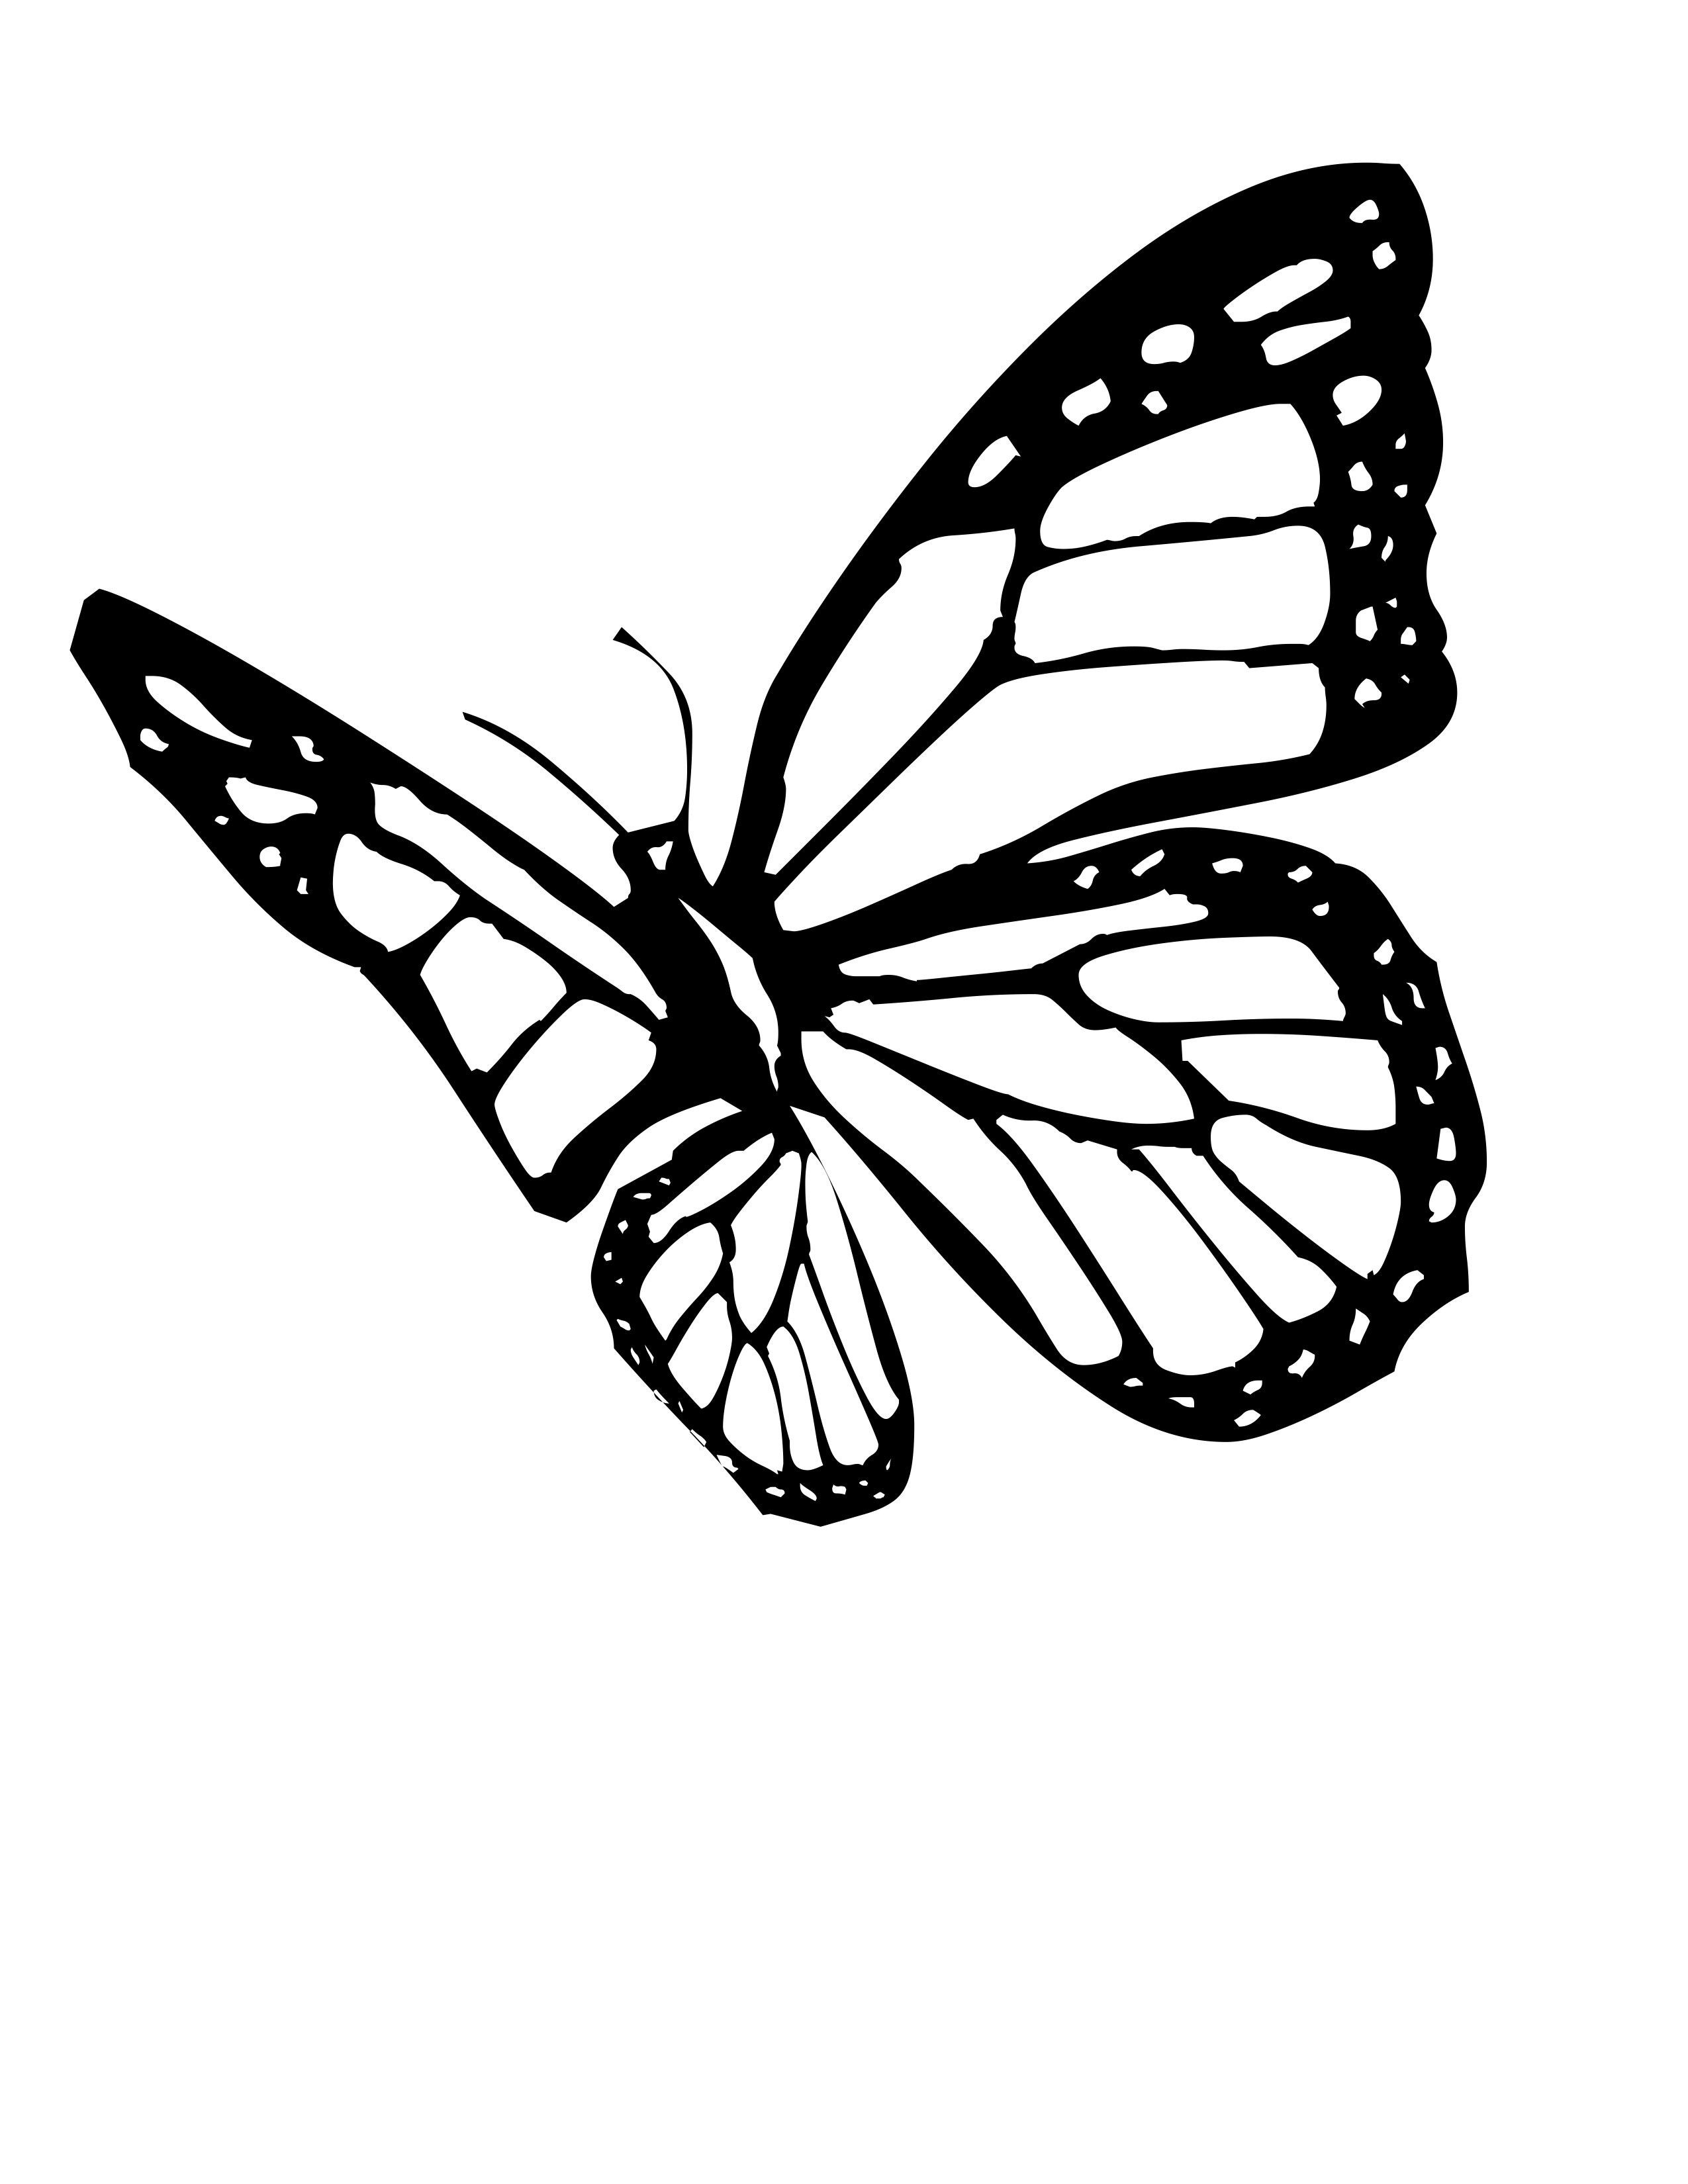 Monarch butterfly Coloring Pages Free  Gallery 1e - Save it to your computer